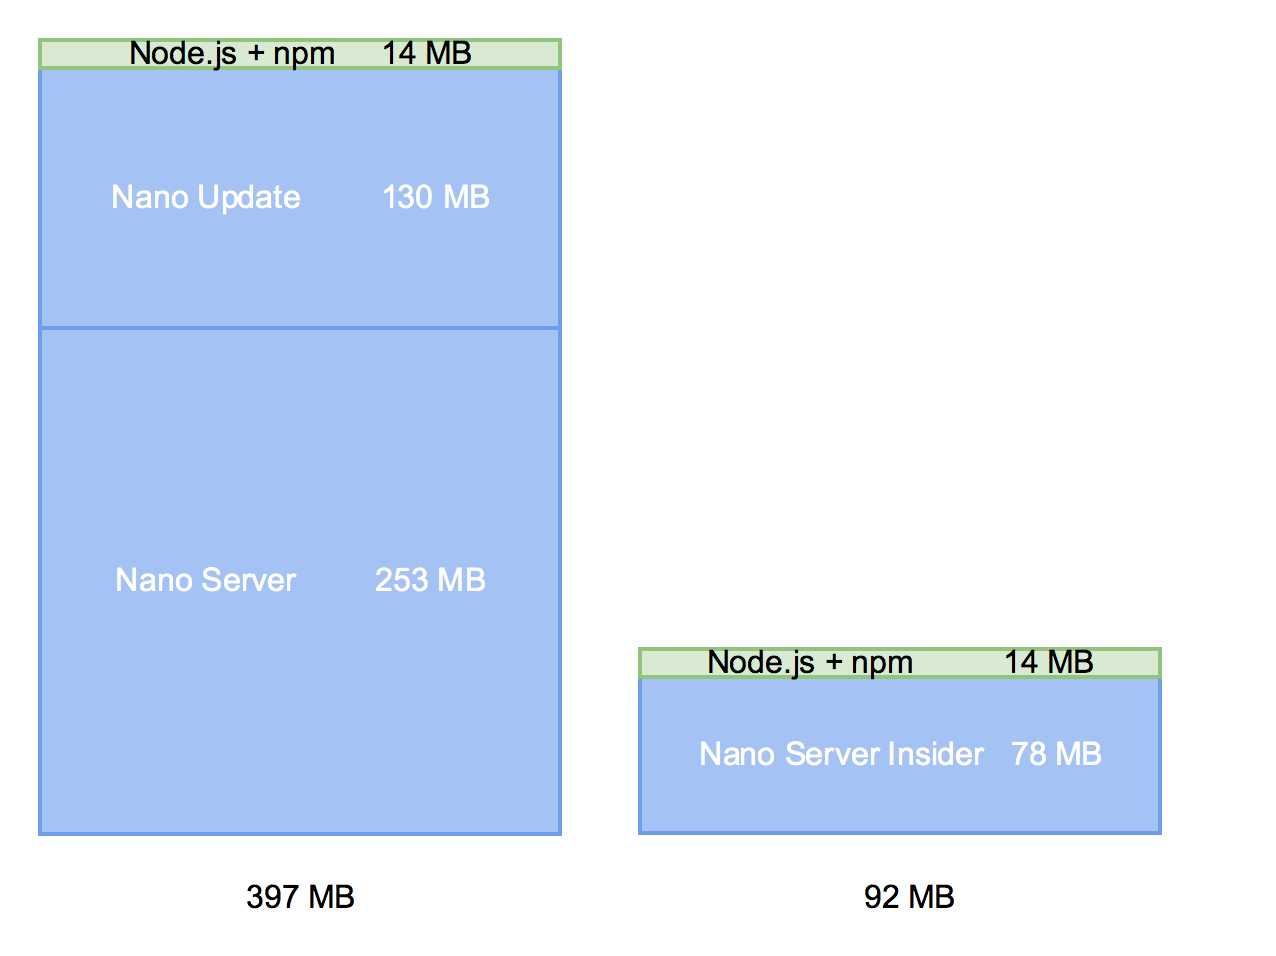 Node.js NanoServer sizes